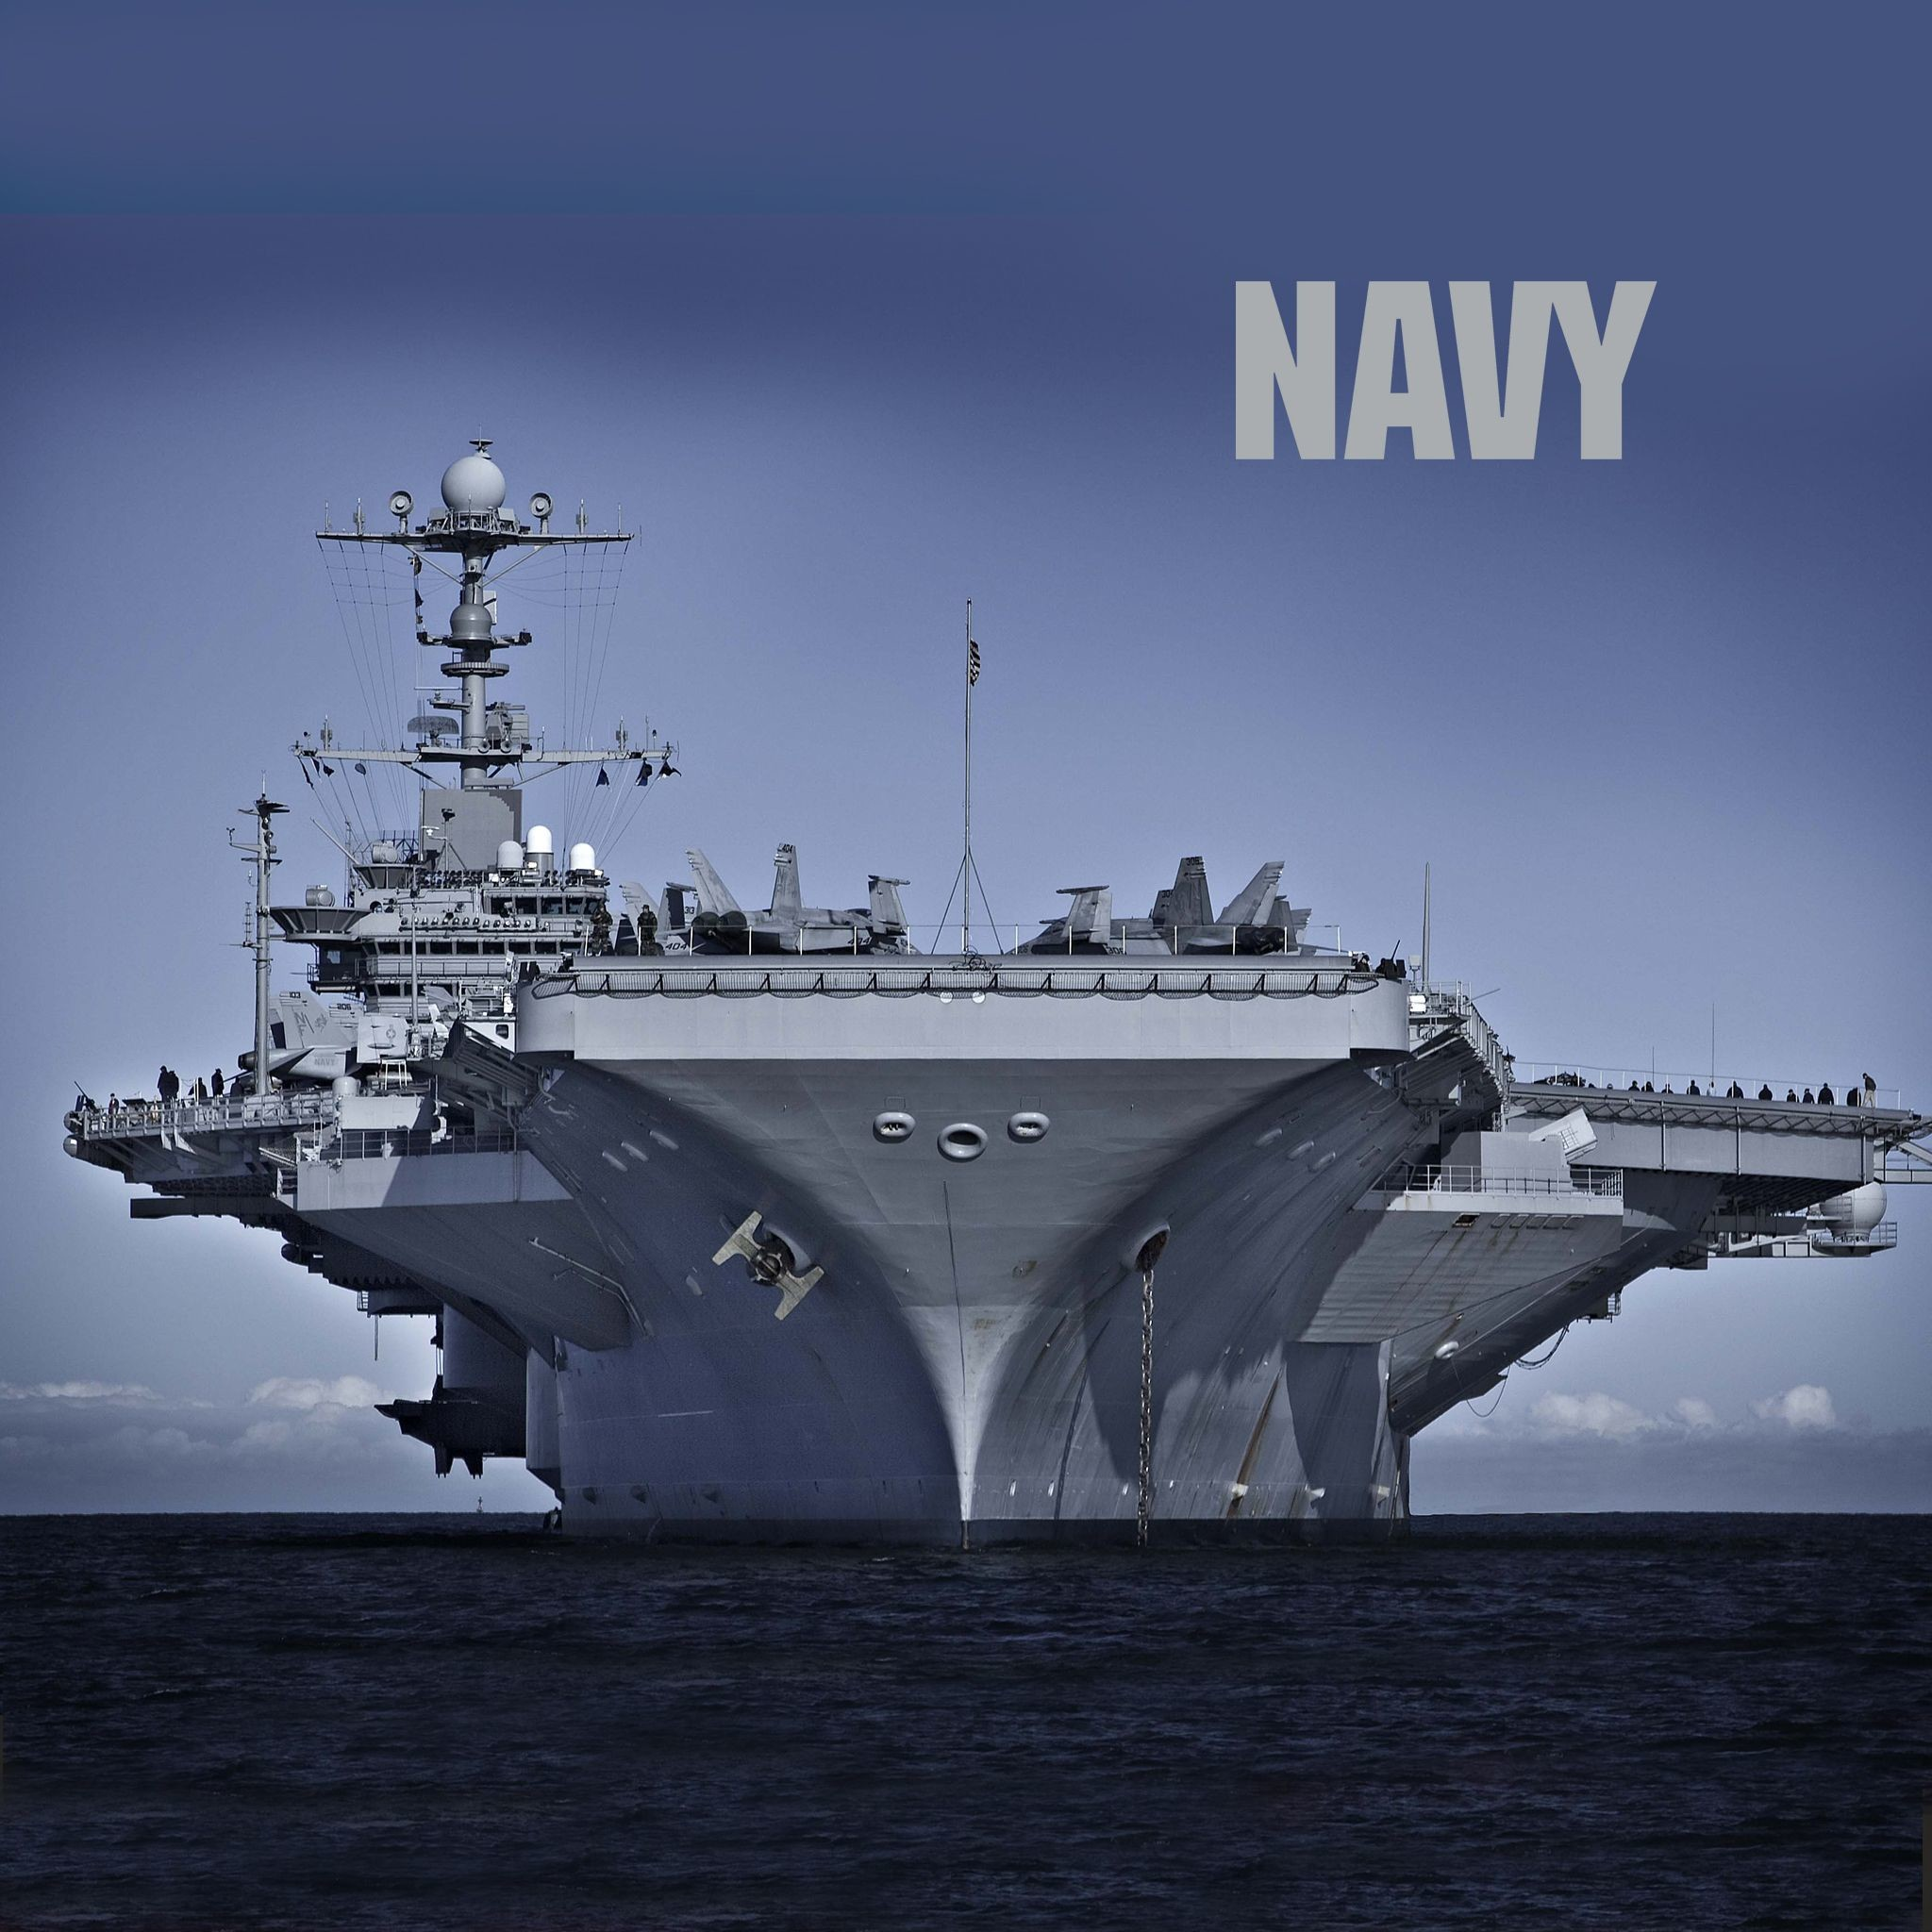 2048x2048 ... Navy Logo Iphone 5 Wallpaper 640x1136. Download